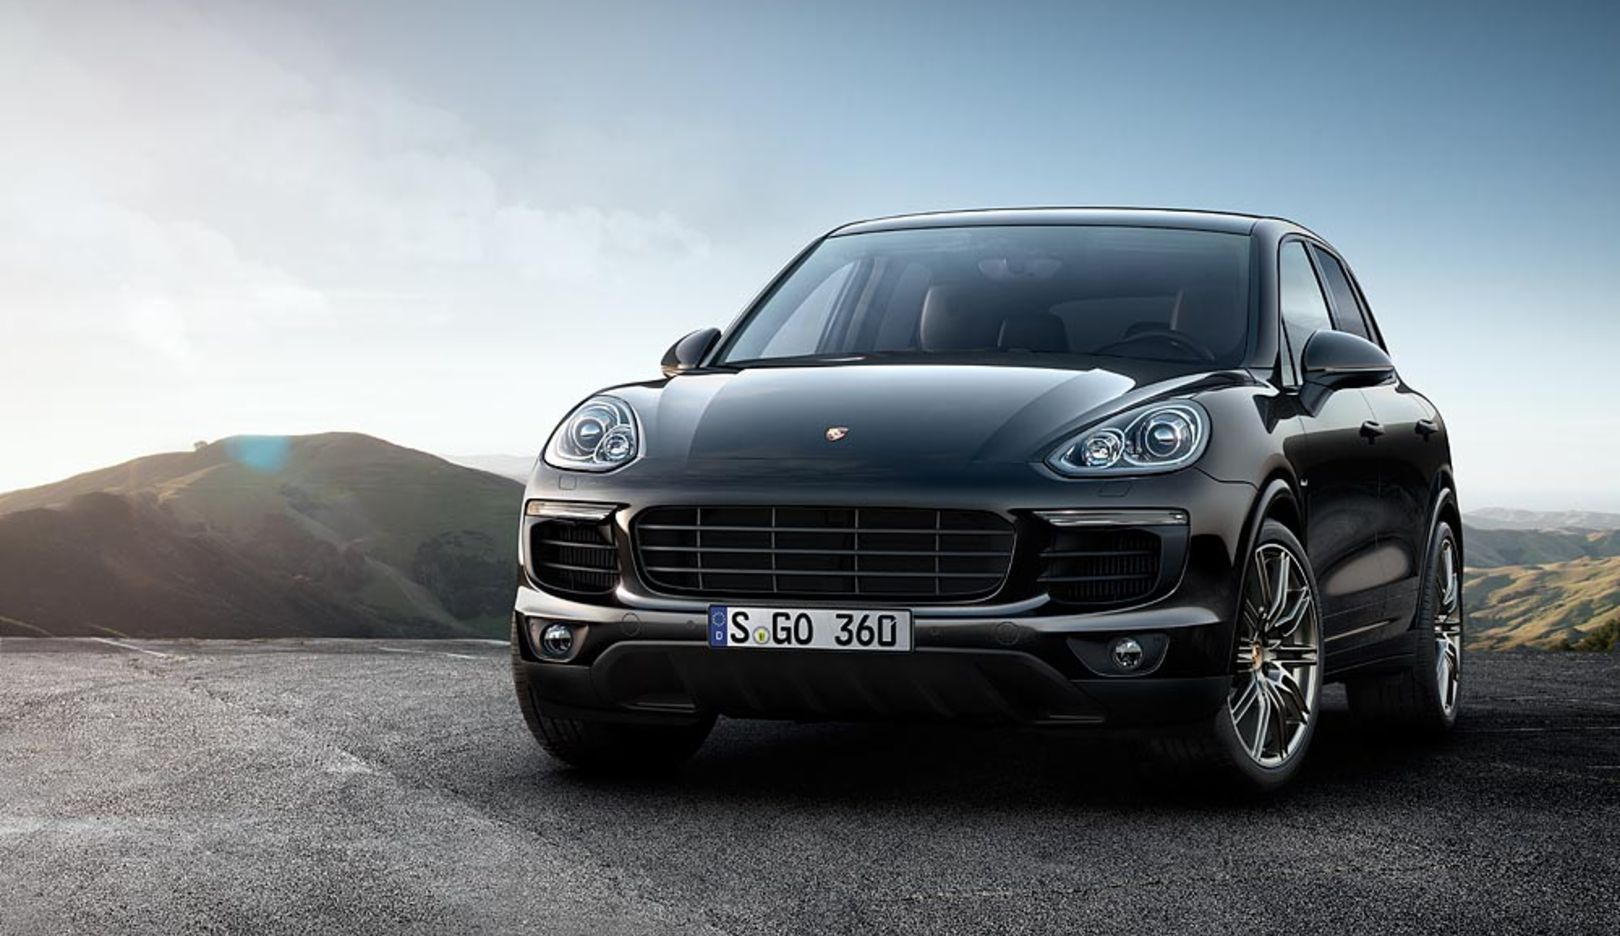 Porsche and Diesel - Questions and Answers